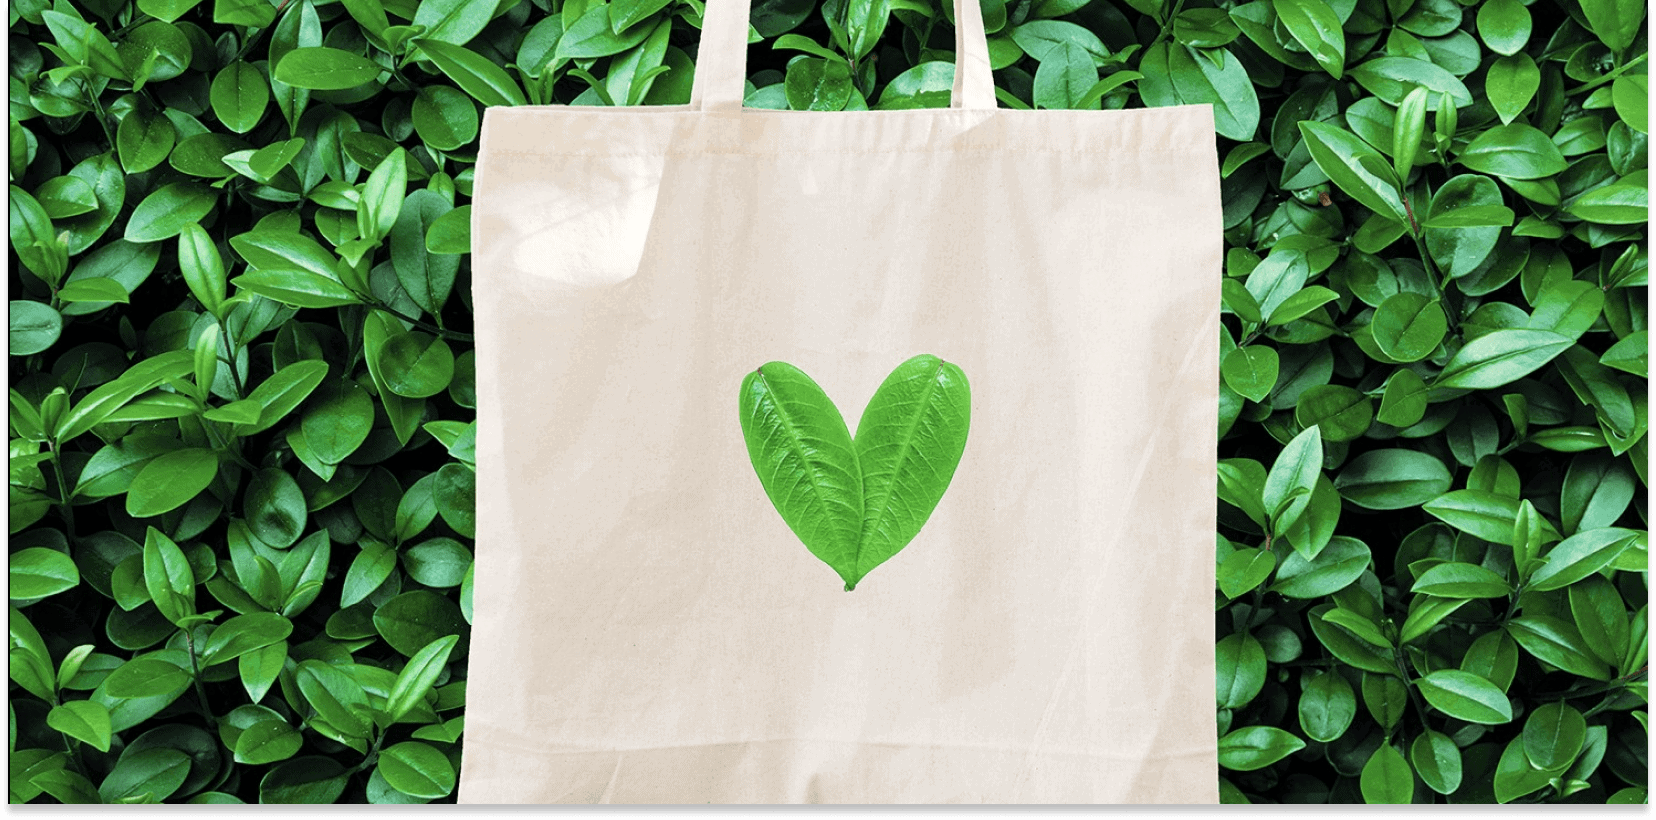 Green consumerism: people are willing to pay more for green